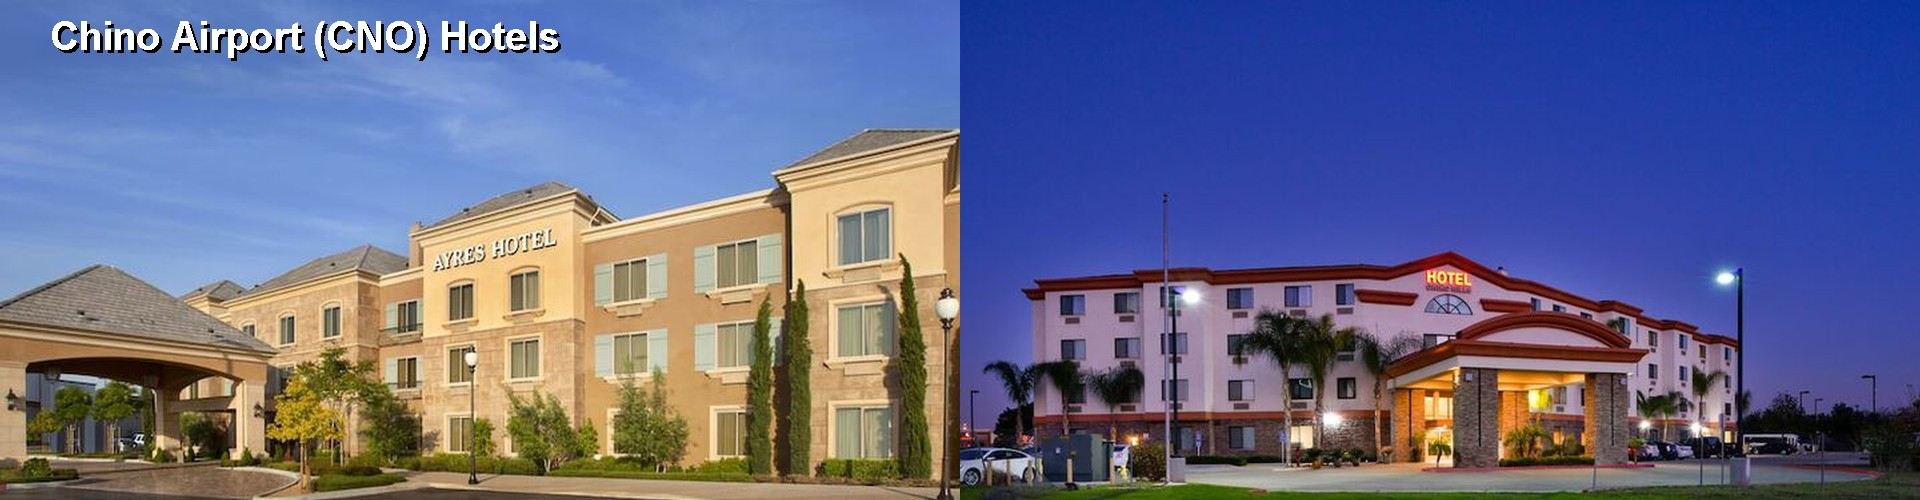 5 Best Hotels near Chino Airport (CNO)